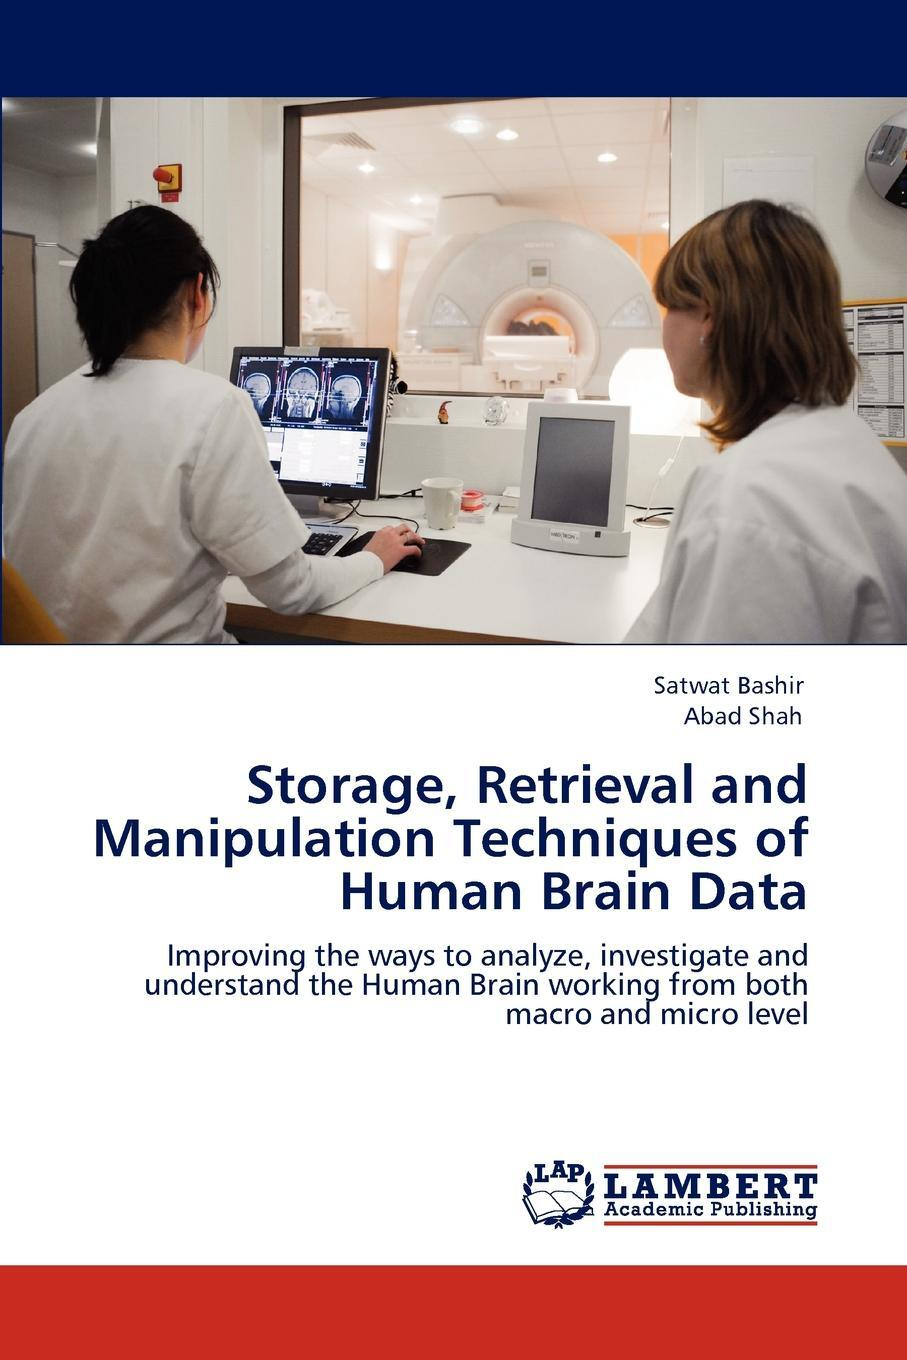 Satwat Bashir, Abad Shah. Storage, Retrieval and Manipulation Techniques of Human Brain Data